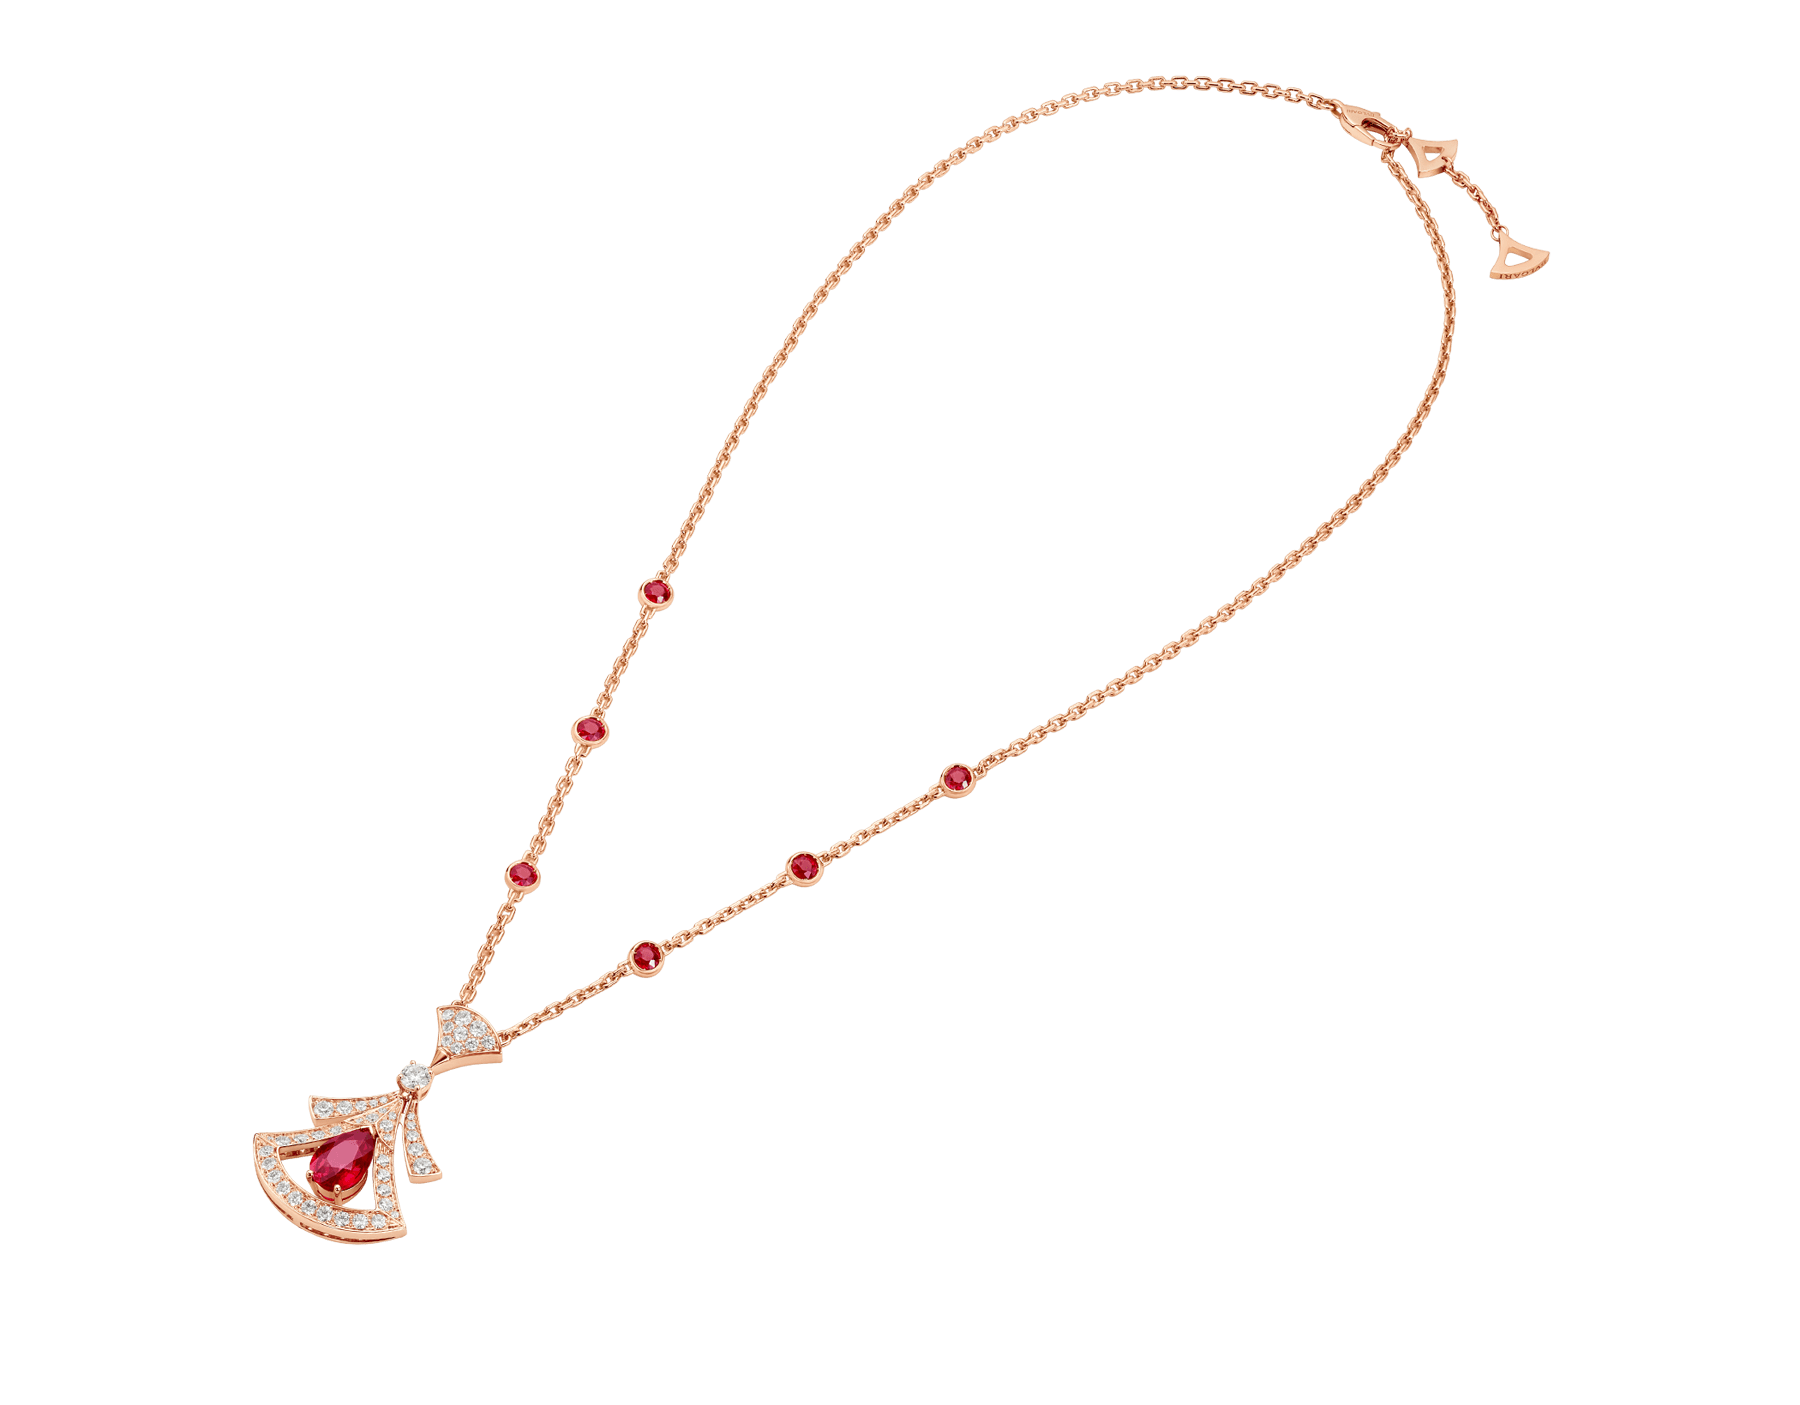 DIVAS' DREAM 18 kt rose gold openwork necklace set with a pear-shaped ruby, round brilliant-cut rubies, a round brilliant-cut diamond and pavé diamonds. 356953 image 2